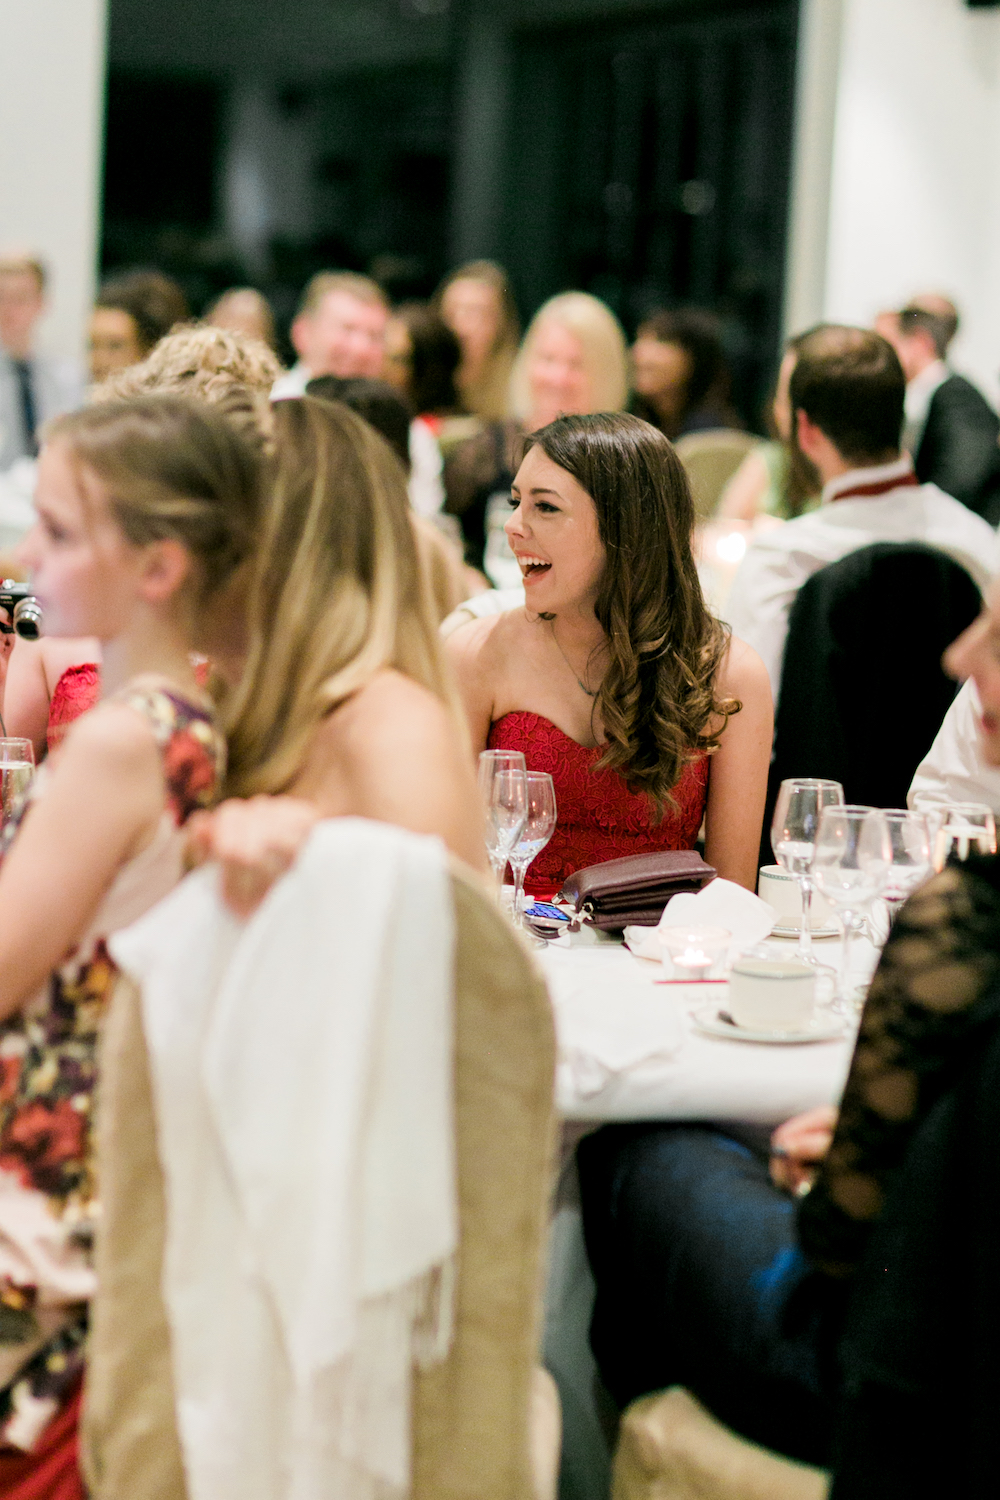 red-and-white-wedding-lancashire-wedding-gibbon-bridge-hotel-in-preston-winter-wedding-jam-table-names-hannah-k-photography-75